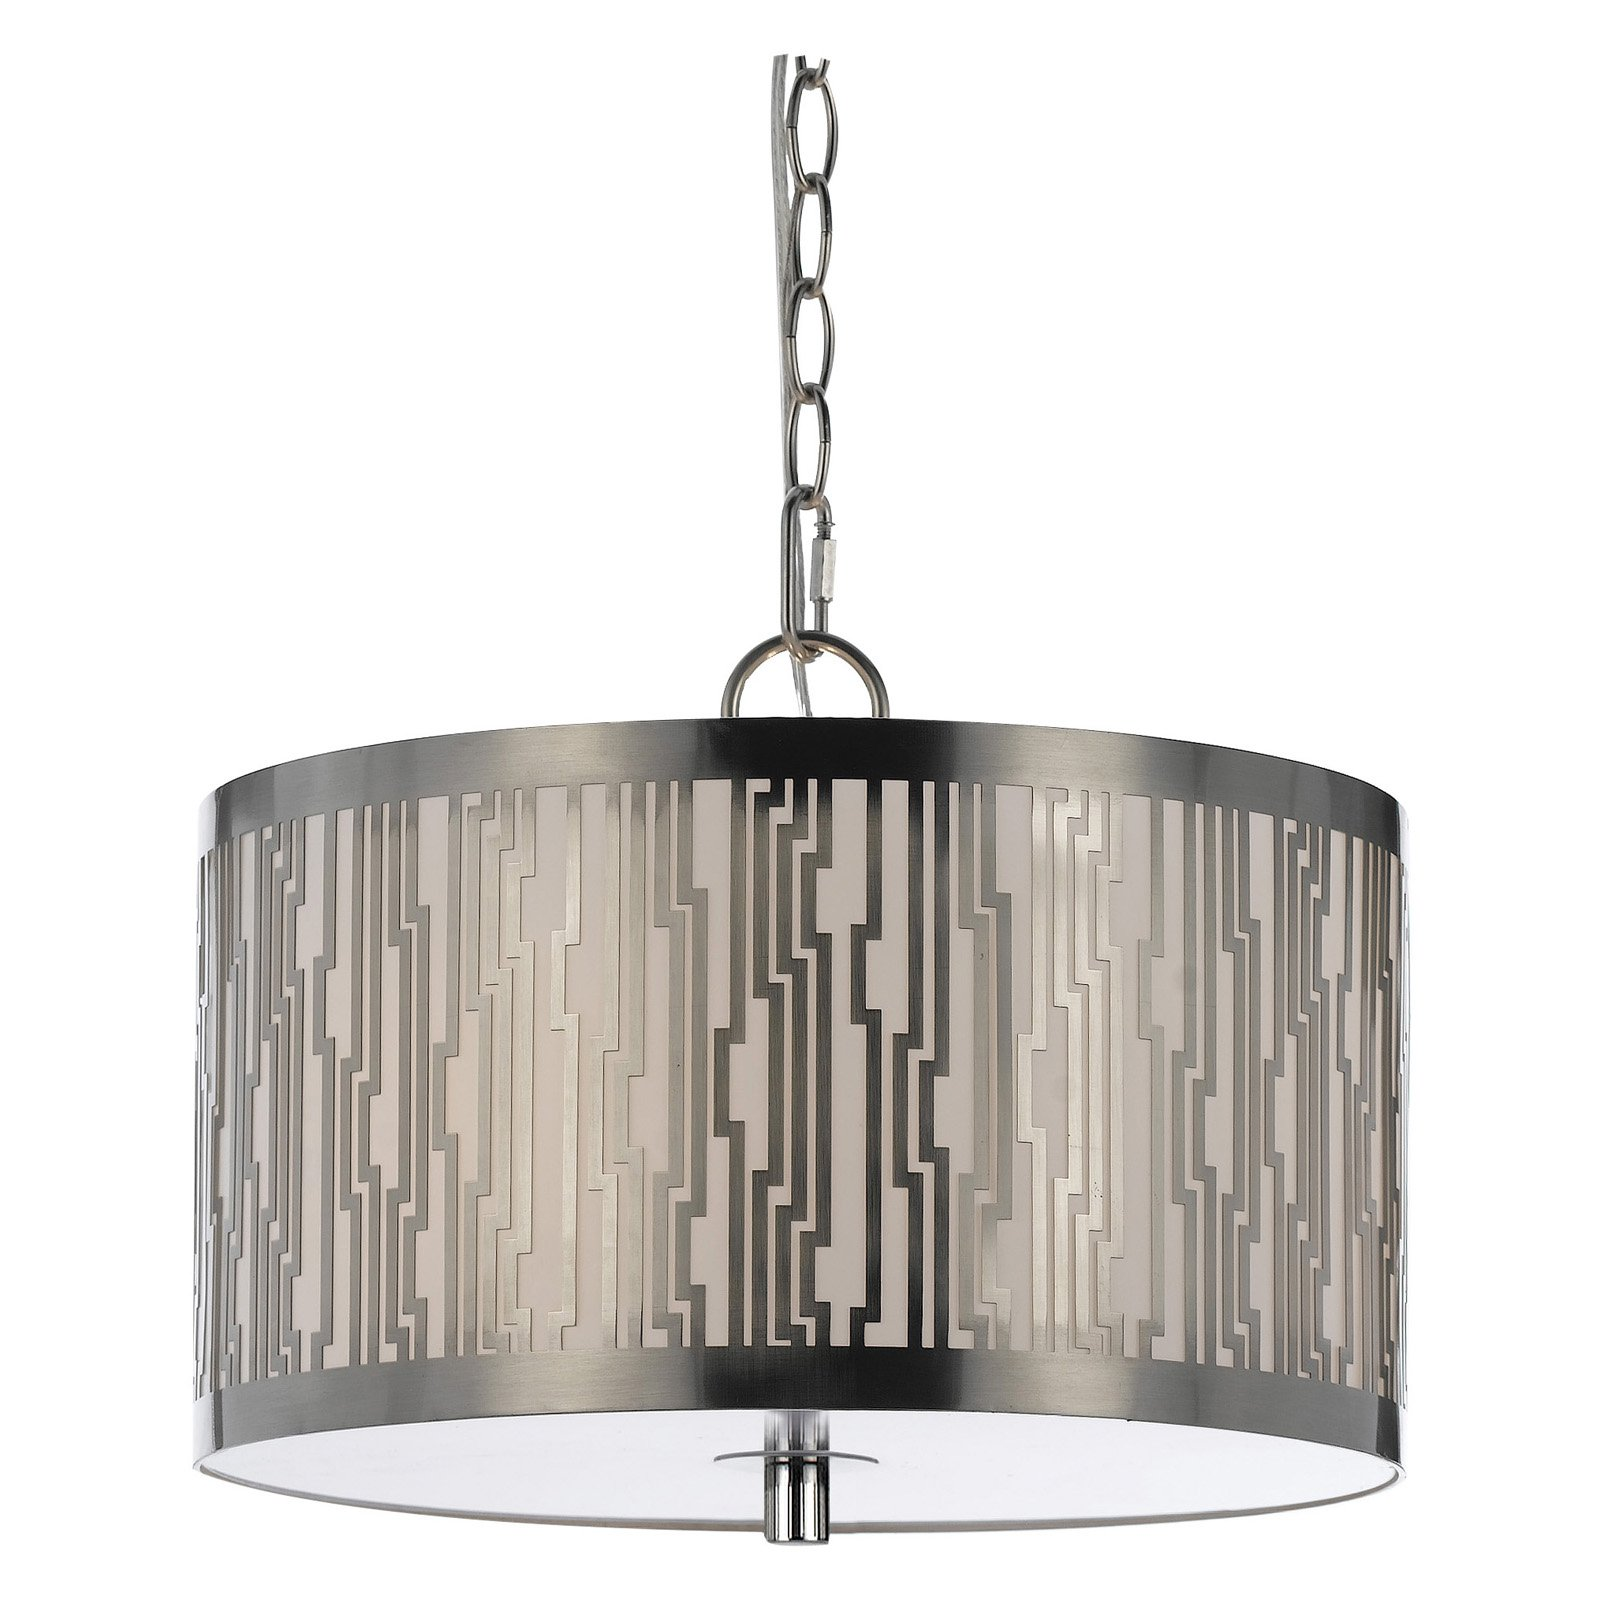 AF Lighting 8490 Pendant in Satin Nickel